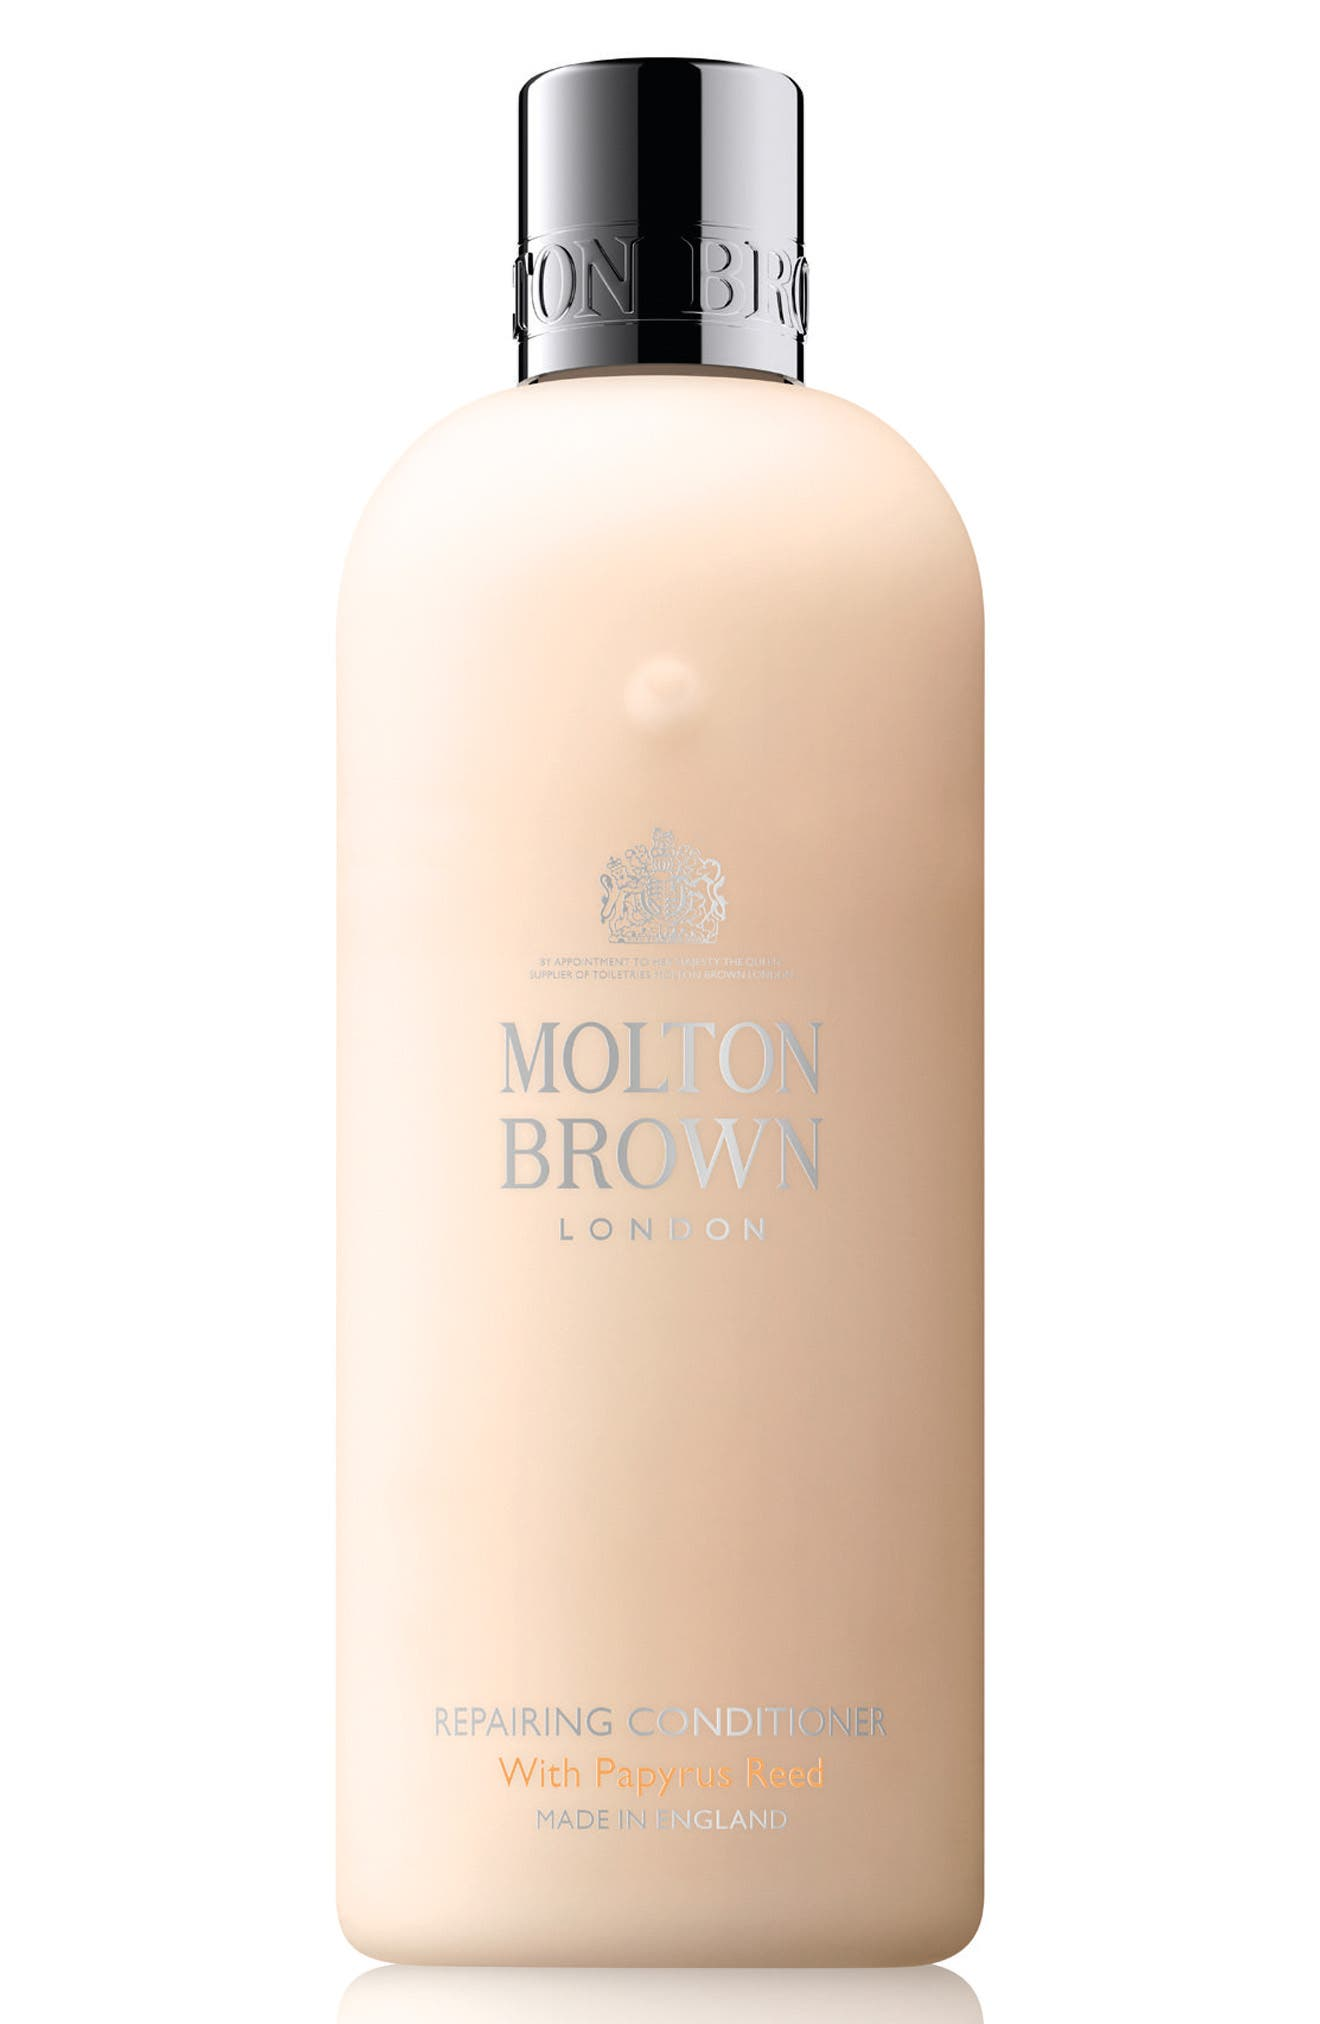 MOLTON BROWN London Repairing Conditioner with Papyrus Reed